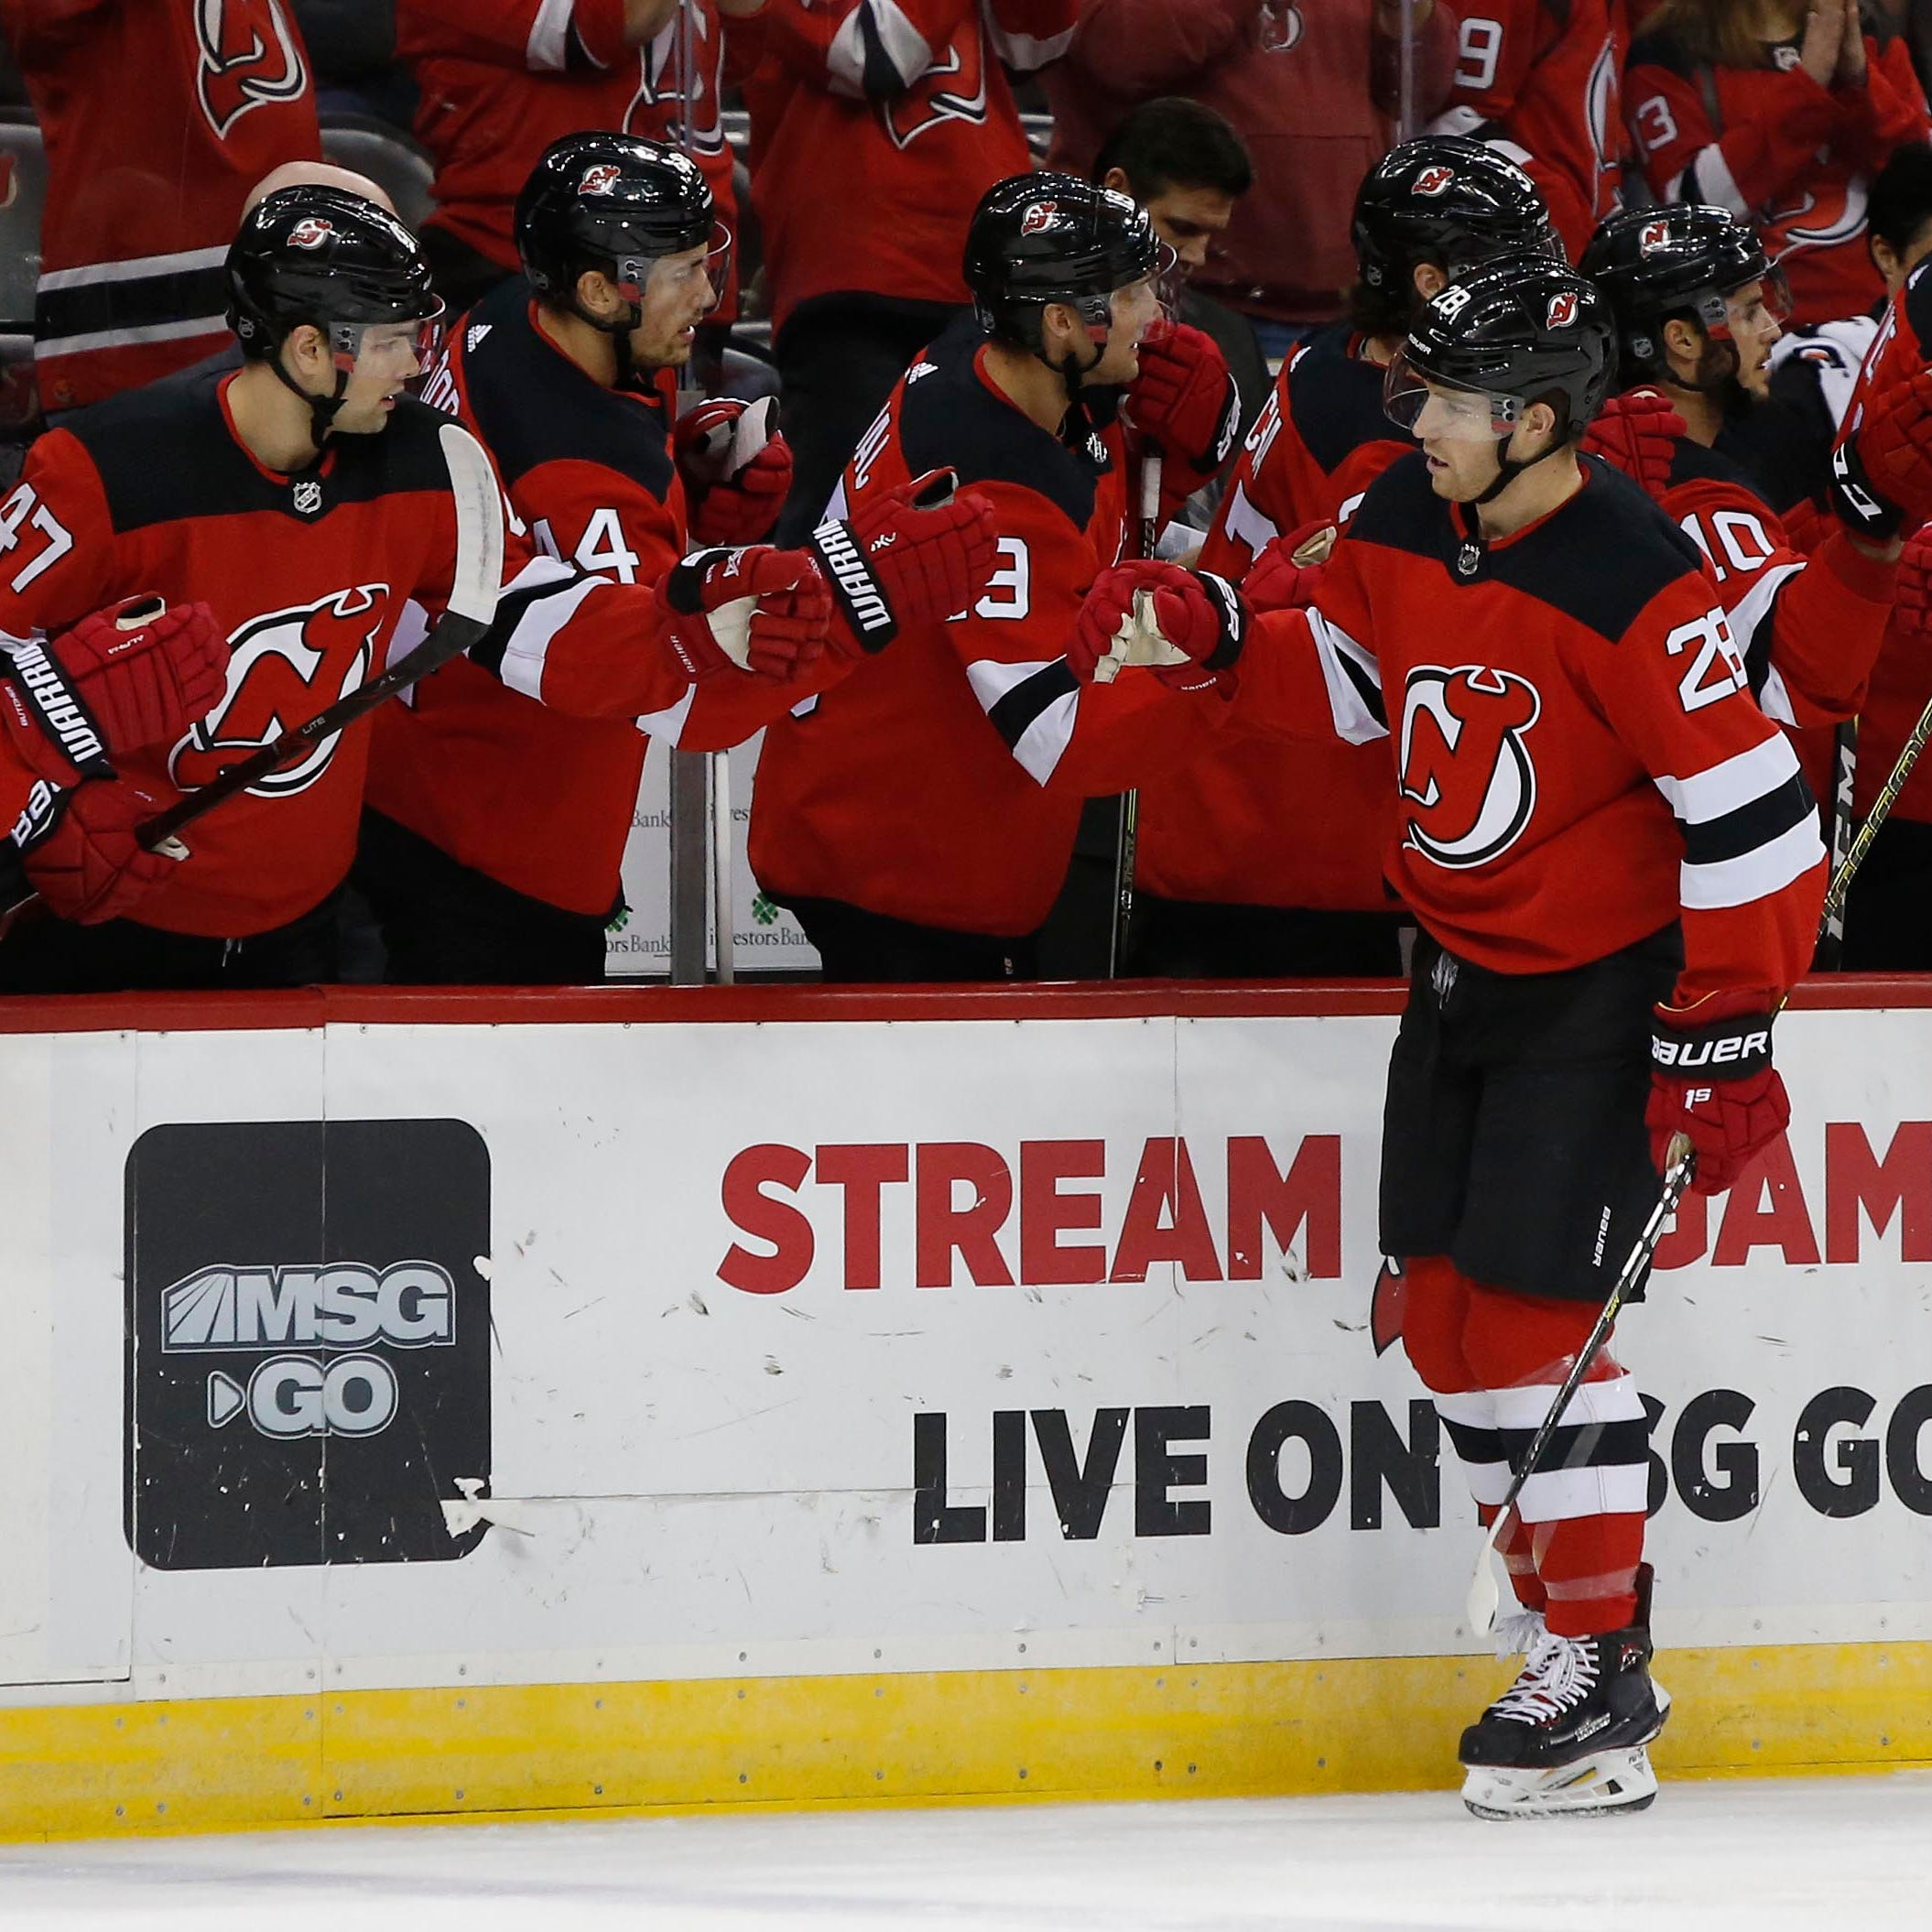 Should struggling NJ Devils make a splash or stay the course?